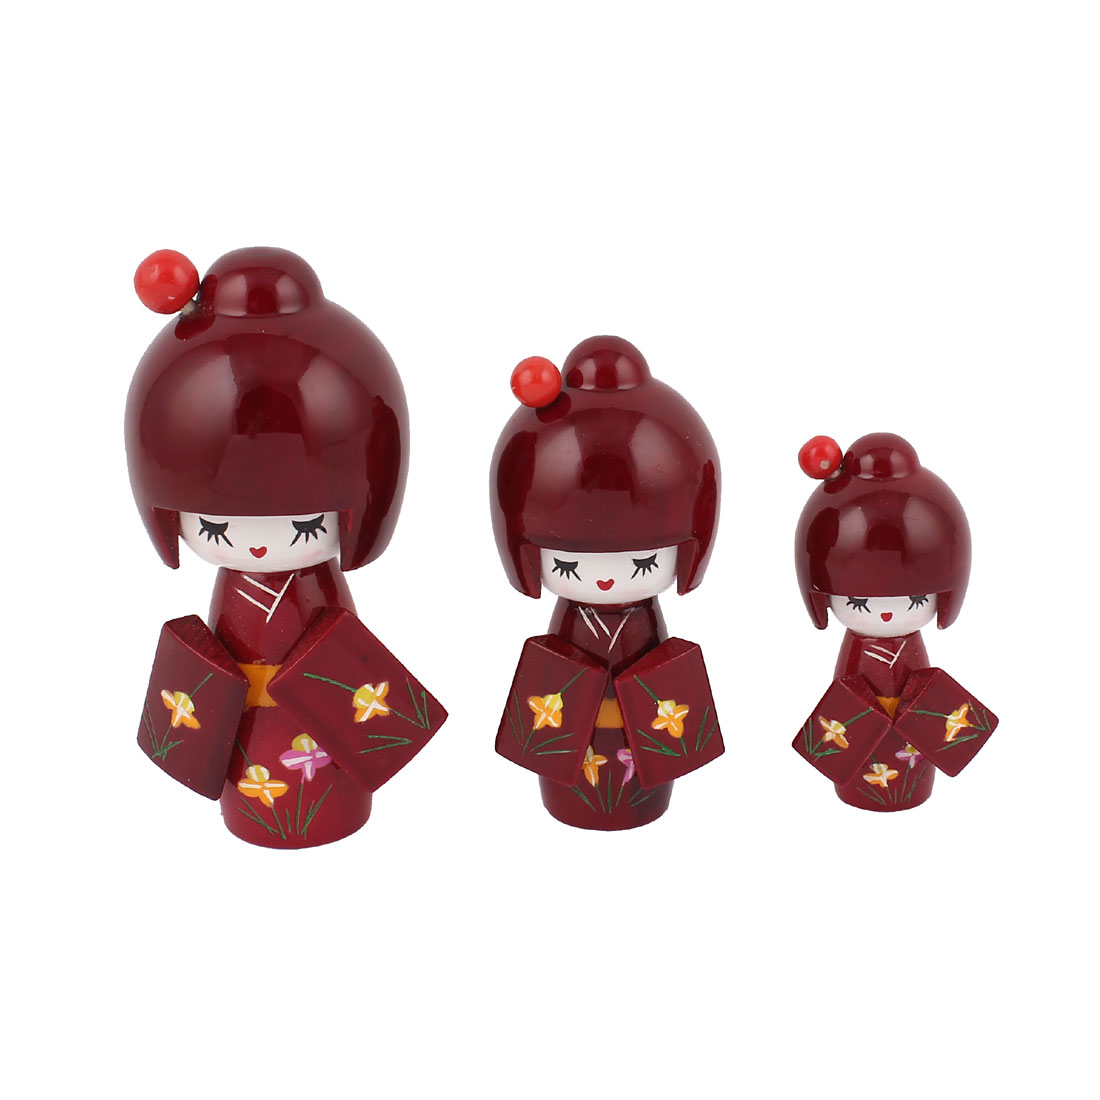 3 in 1 Handmade Floral Detail Kimono Wooden Craft Japanese Kokeshi Doll Red